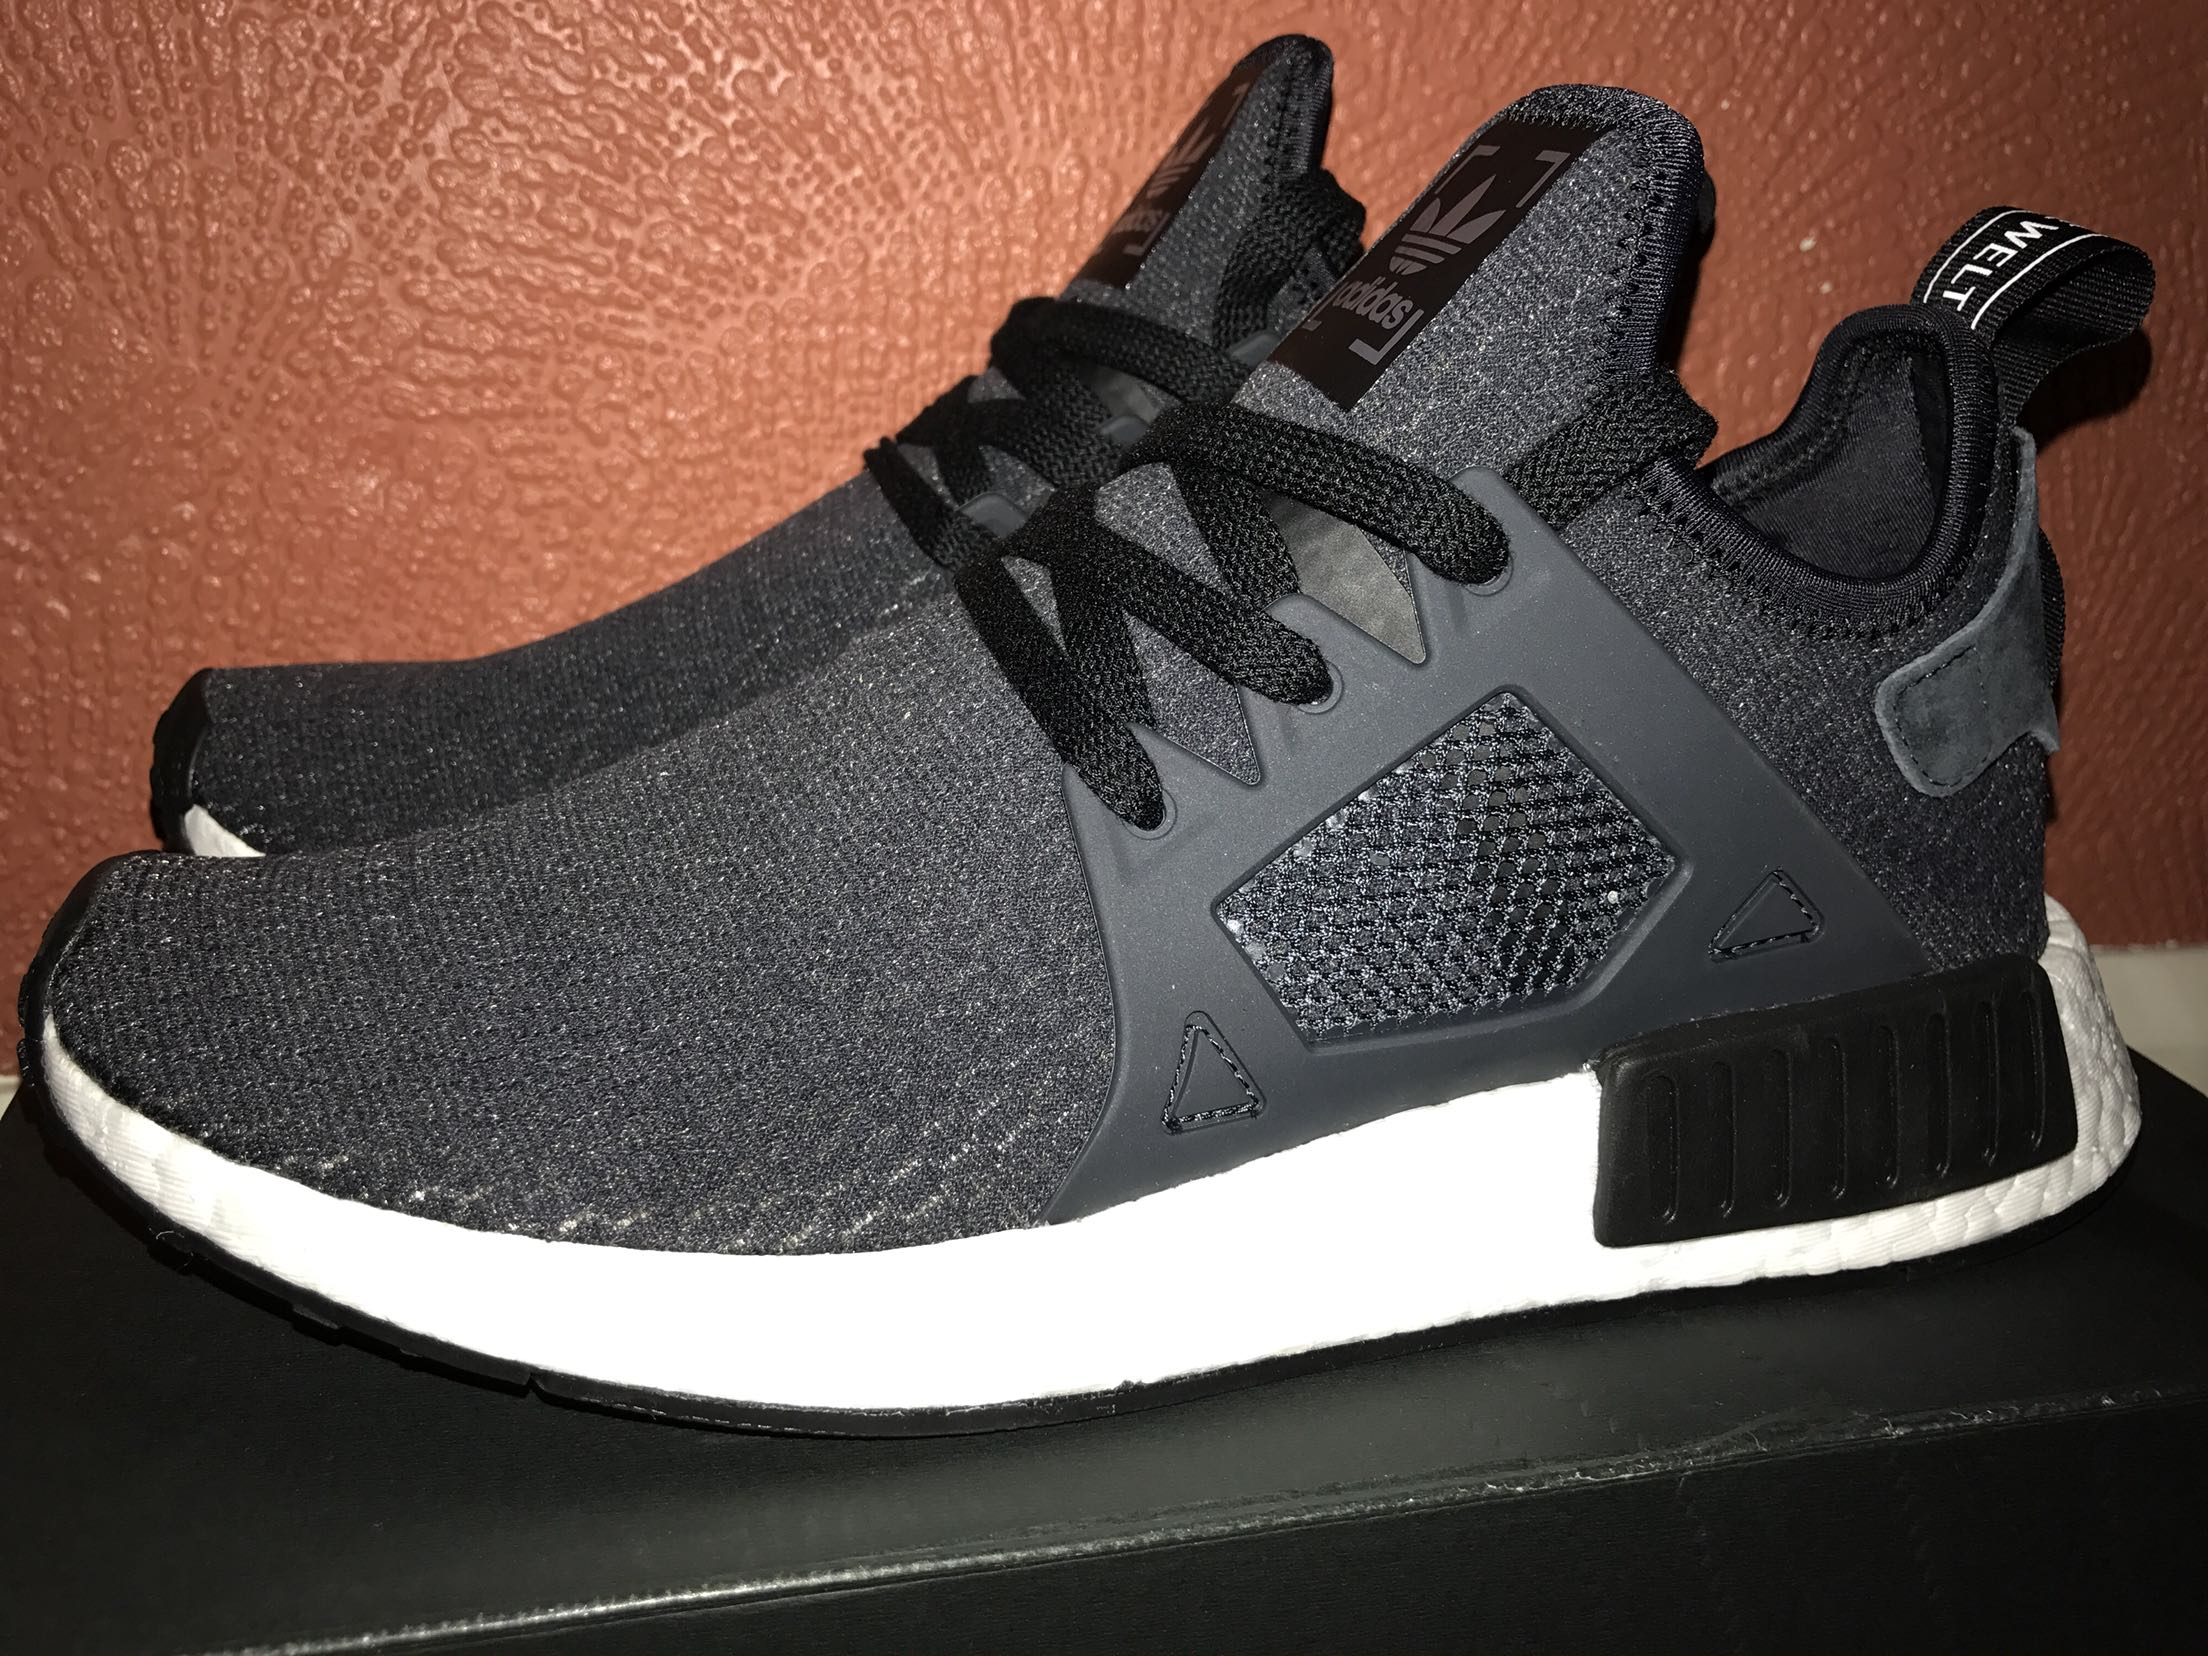 xeqxrs adidas nmd - Second Hand Clothing and Jewellery, Buy and Sell in